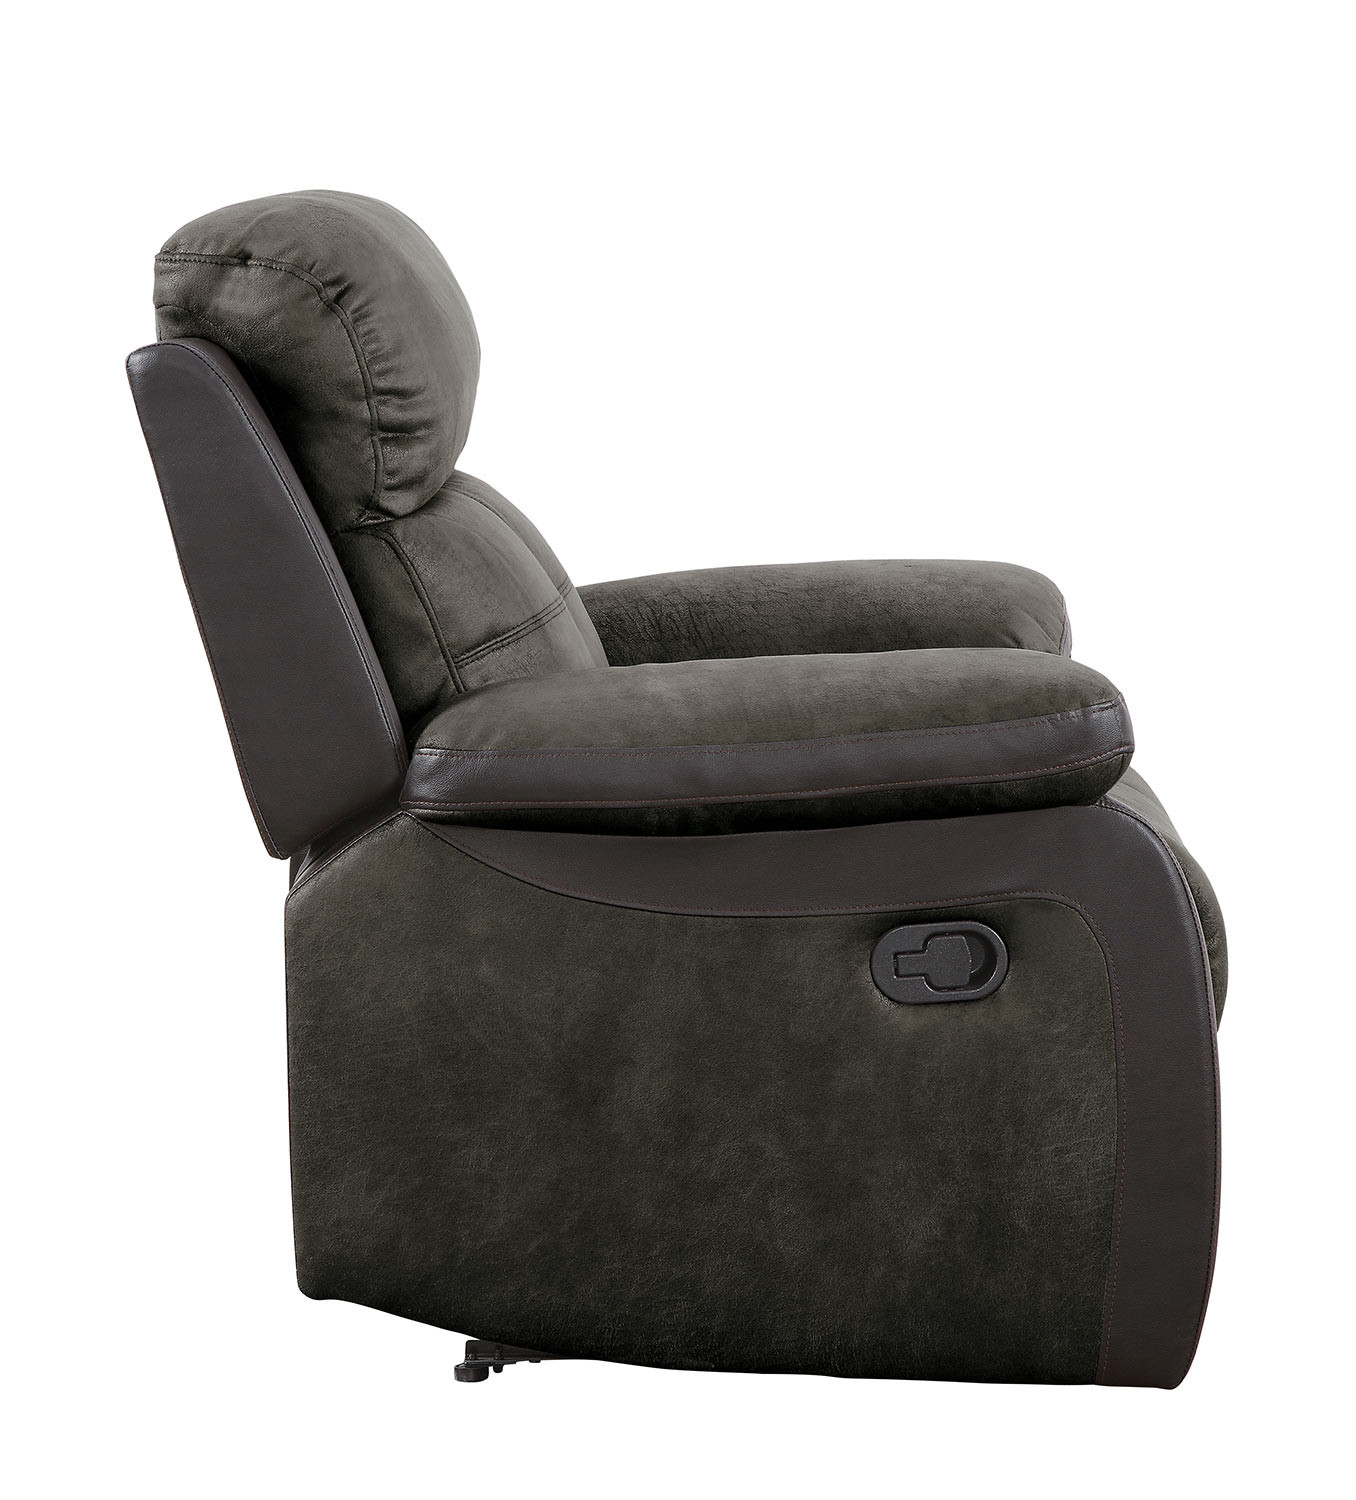 Homelegance Acadia Reclining Chair - Brown microfiber and bi-cast vinyl